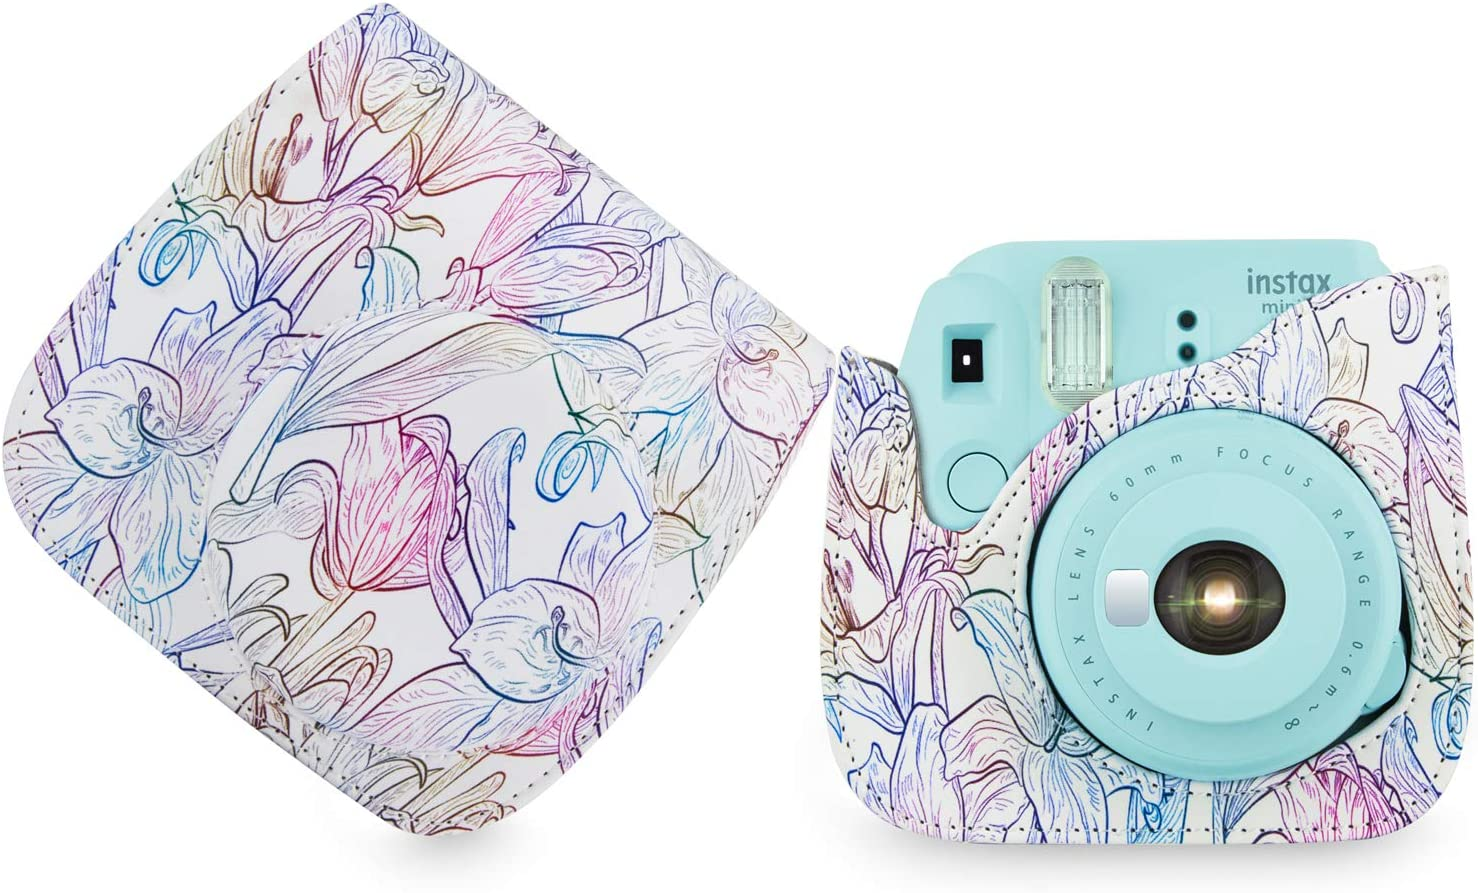 White Flower Elvam Camera Case Bag Compatible for Fujifilm Mini 9 Mini 8 Instant Camera with Detachable Adjustable Strap